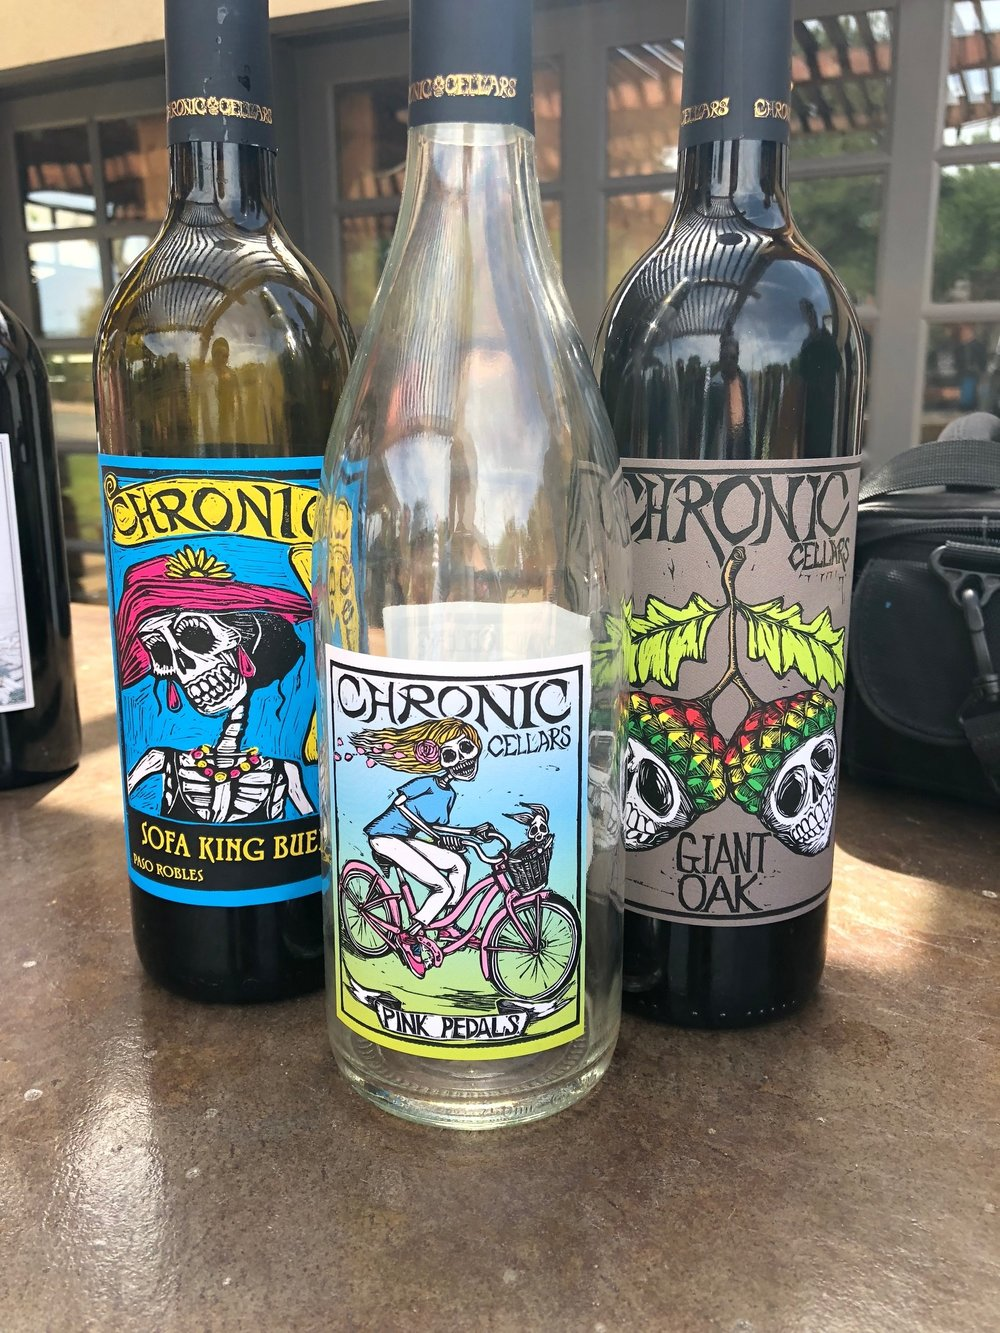 Chronic Cellars Wine.jpg